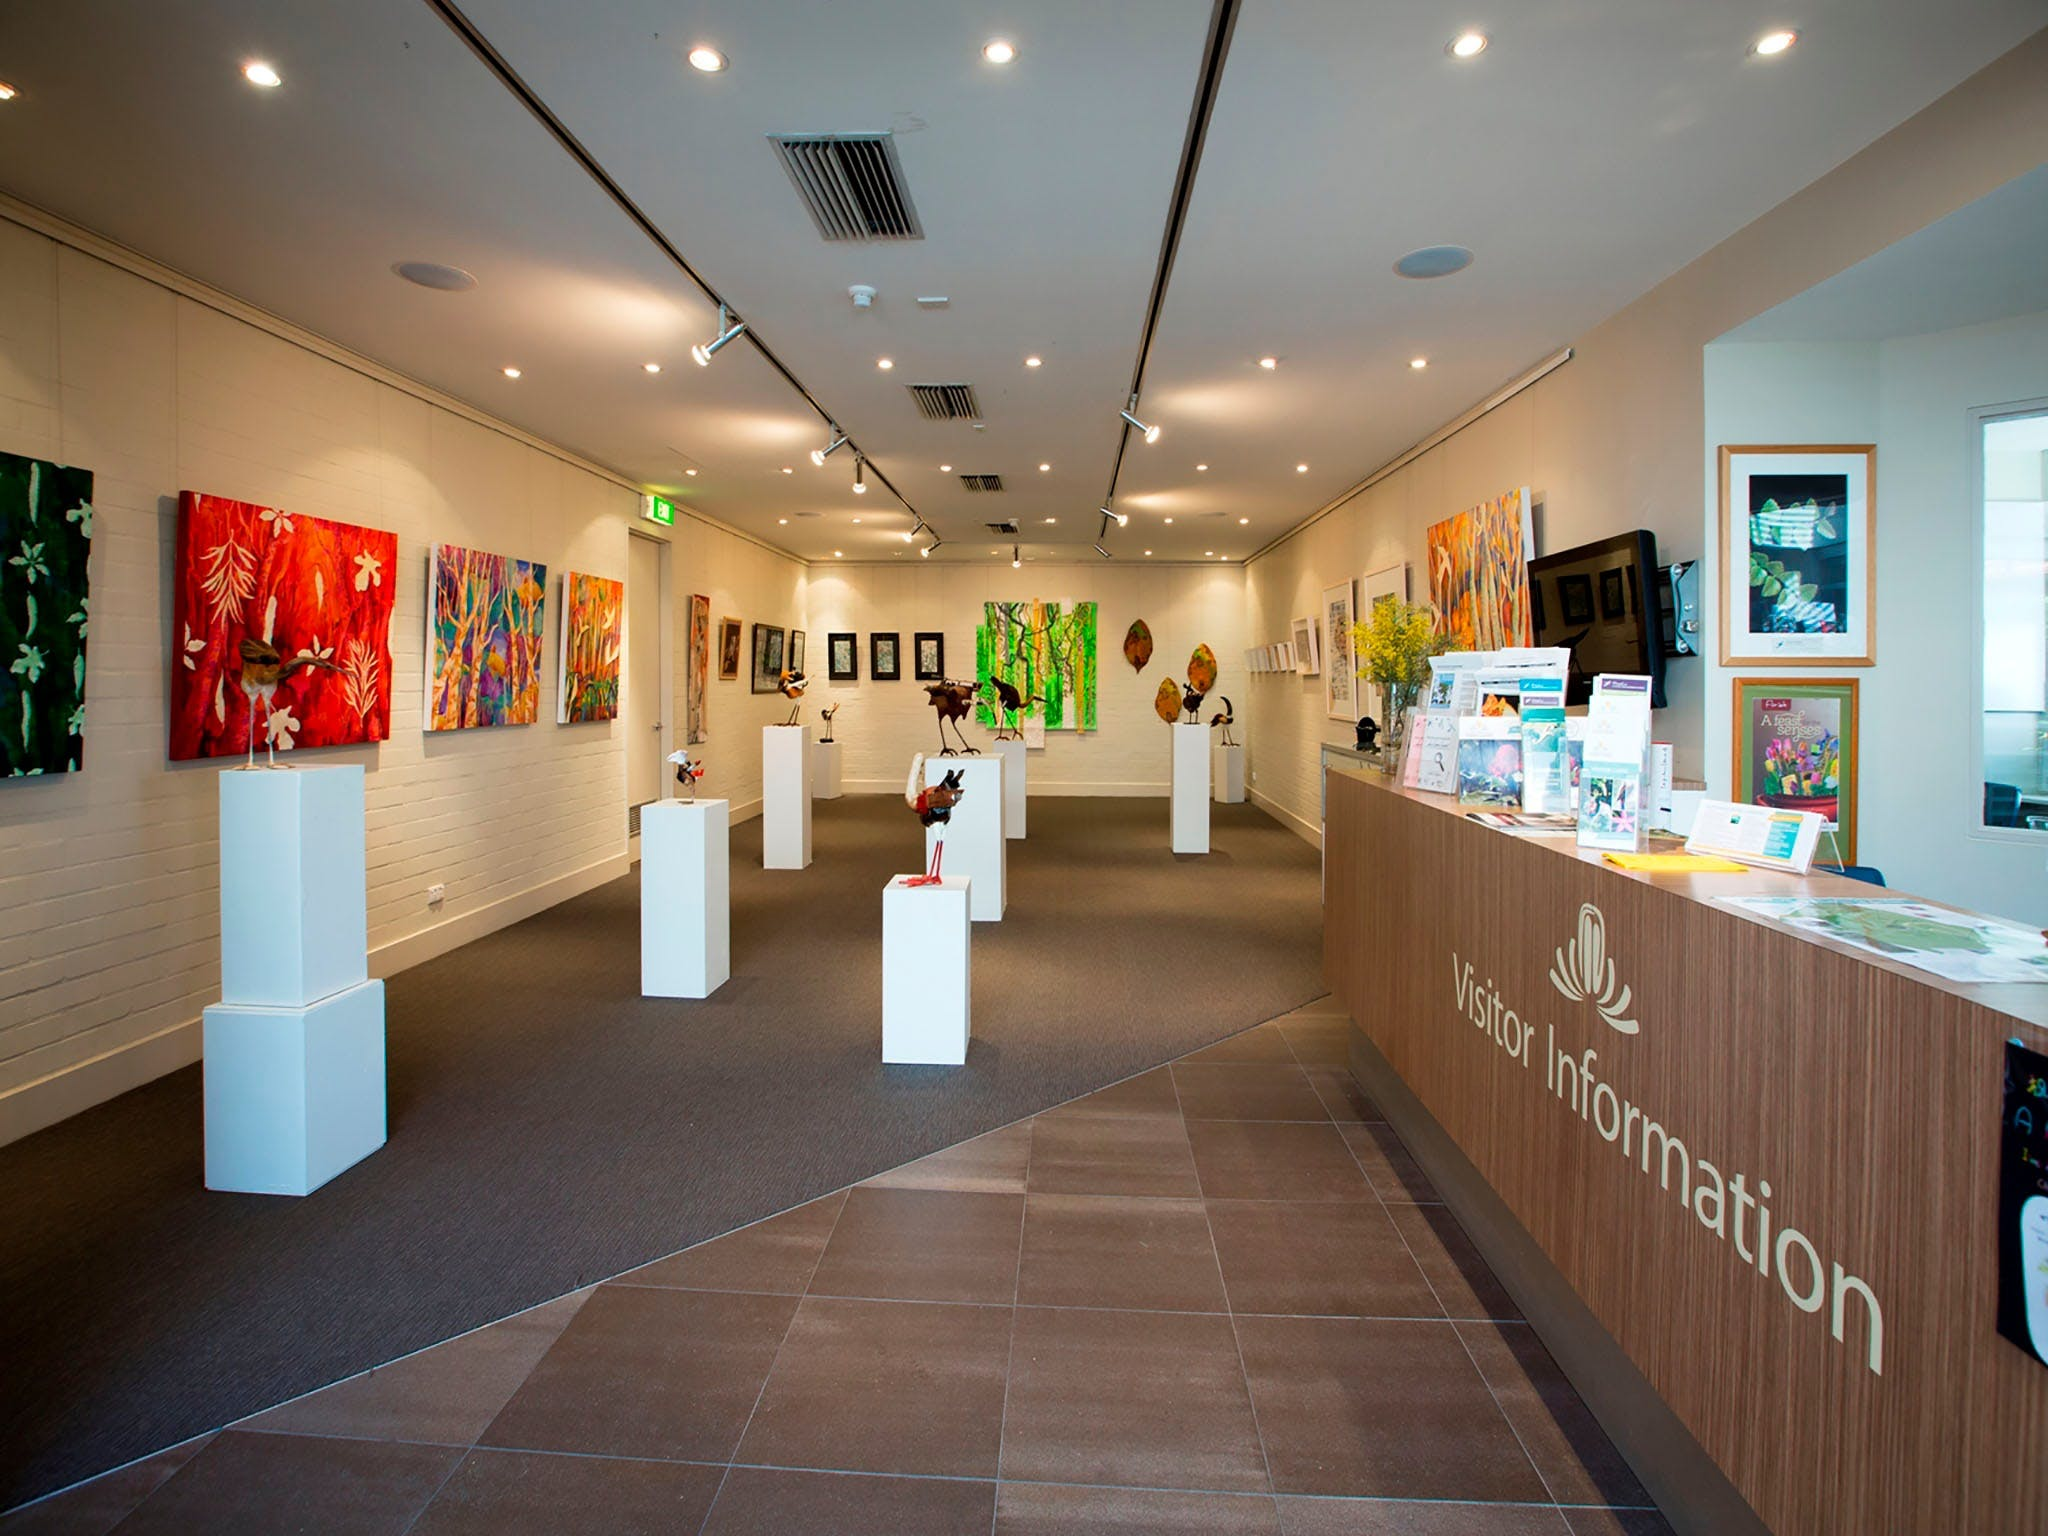 Australian National Botanic Gardens Visitor Centre Gallery - Accommodation NSW